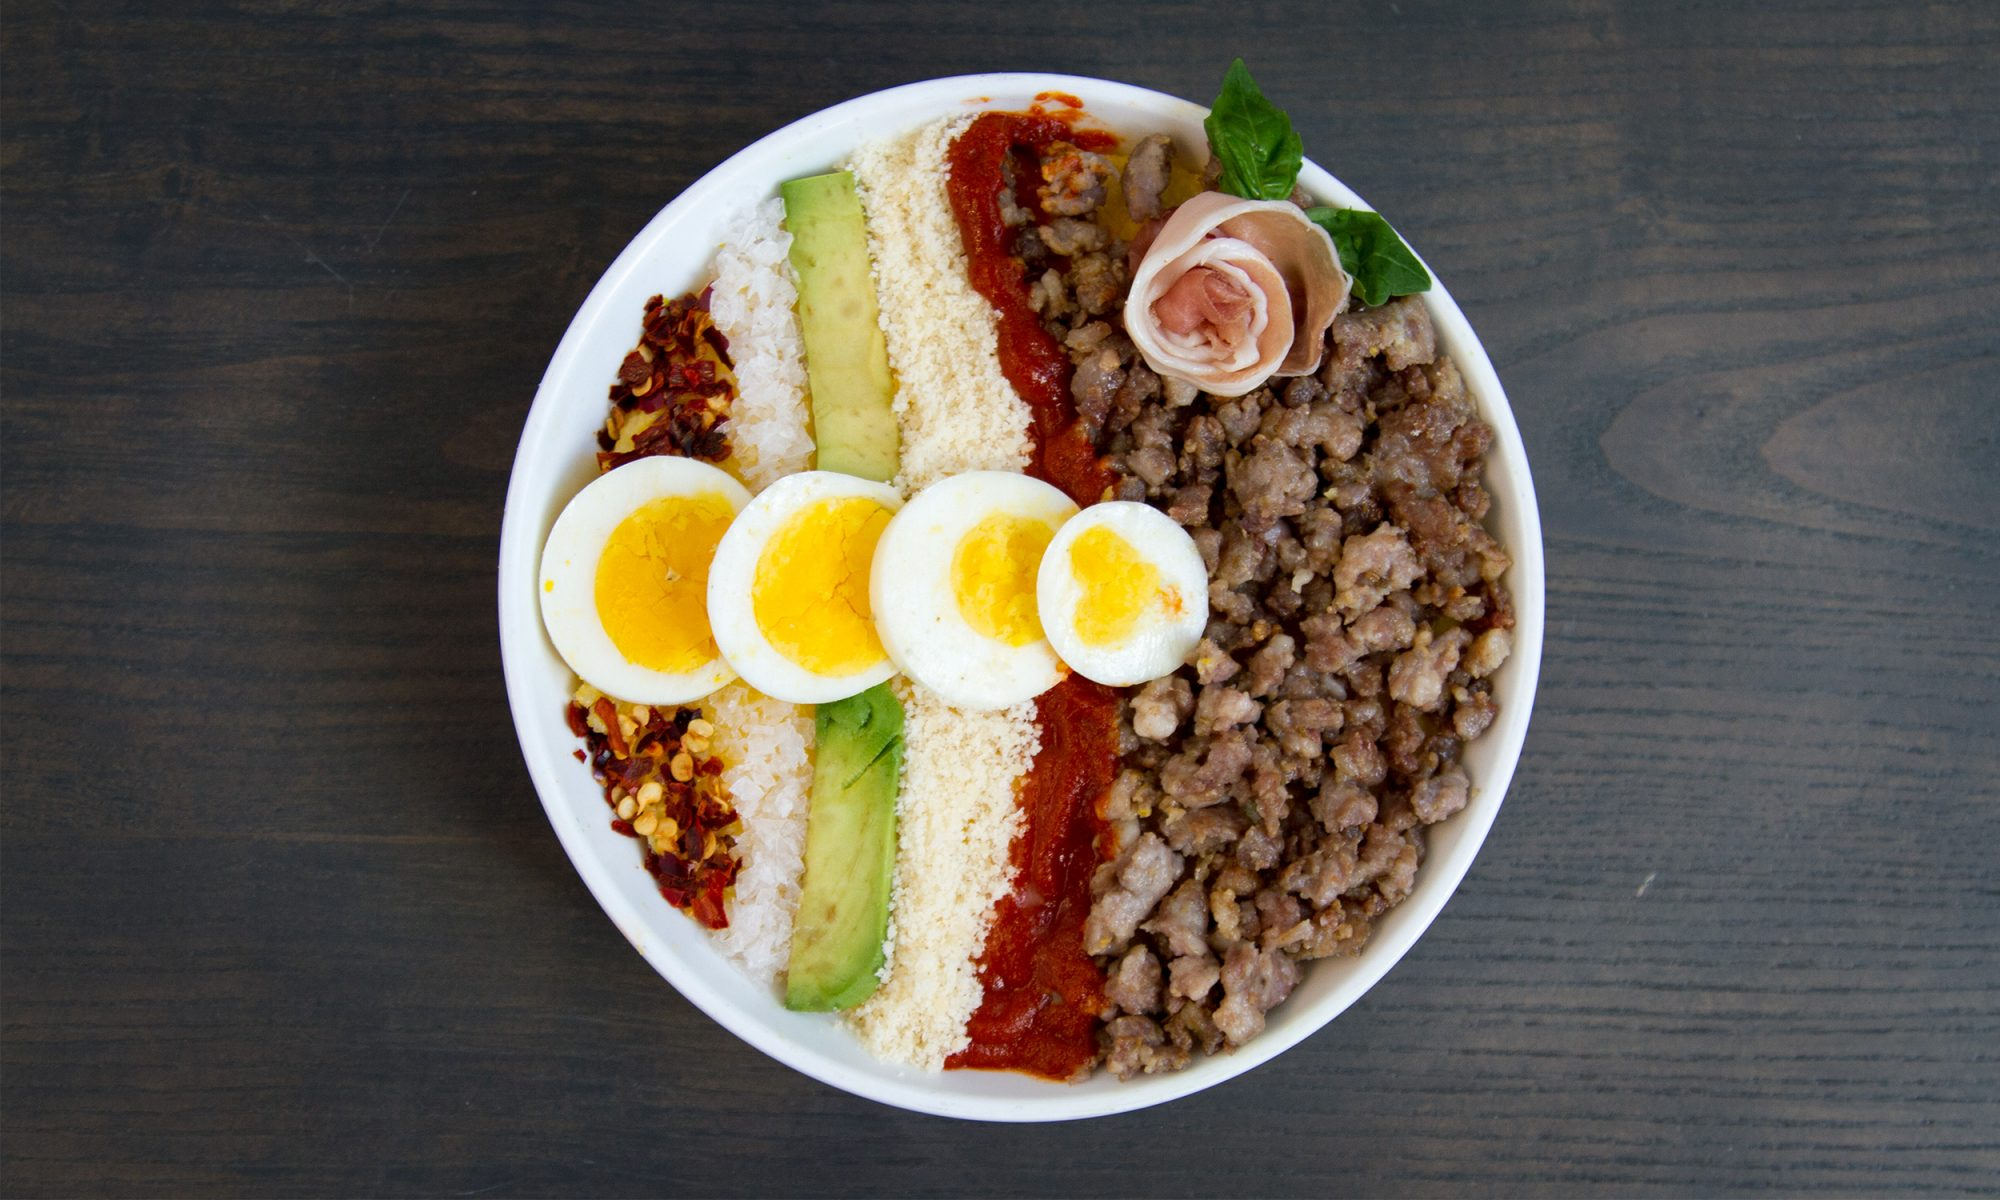 EC: Instagram Breakfast Bowl for a Garbage Person